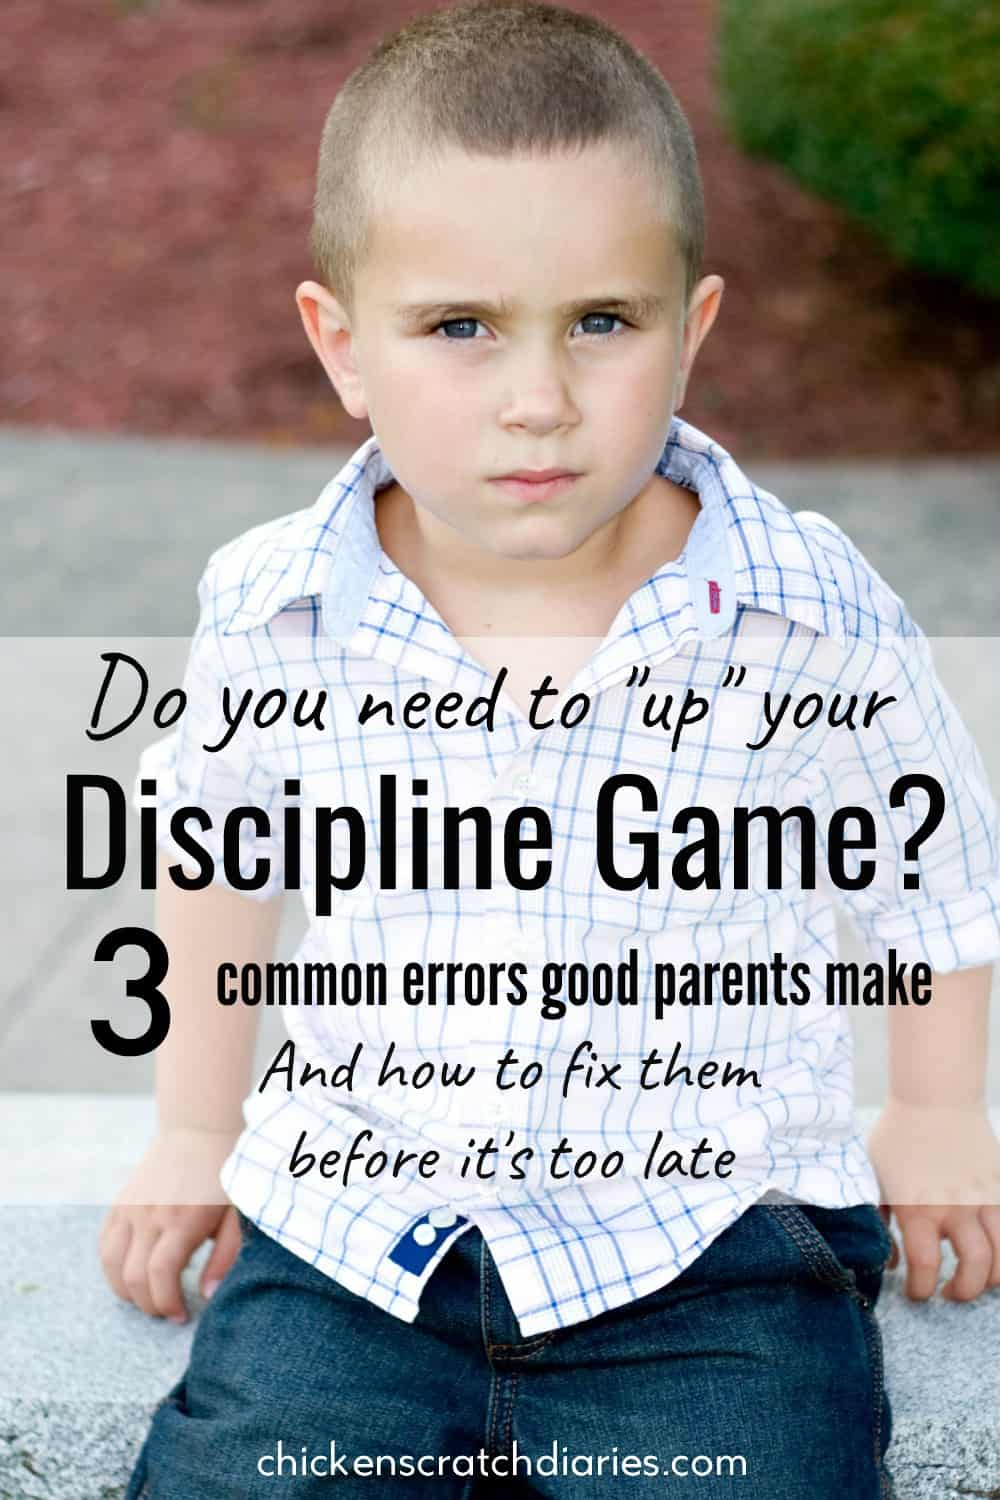 Discipline motivation: 3 common mistakes we make as parents and how to fix them. Great advice! #Parenting #Discipline #LoveAndLogic